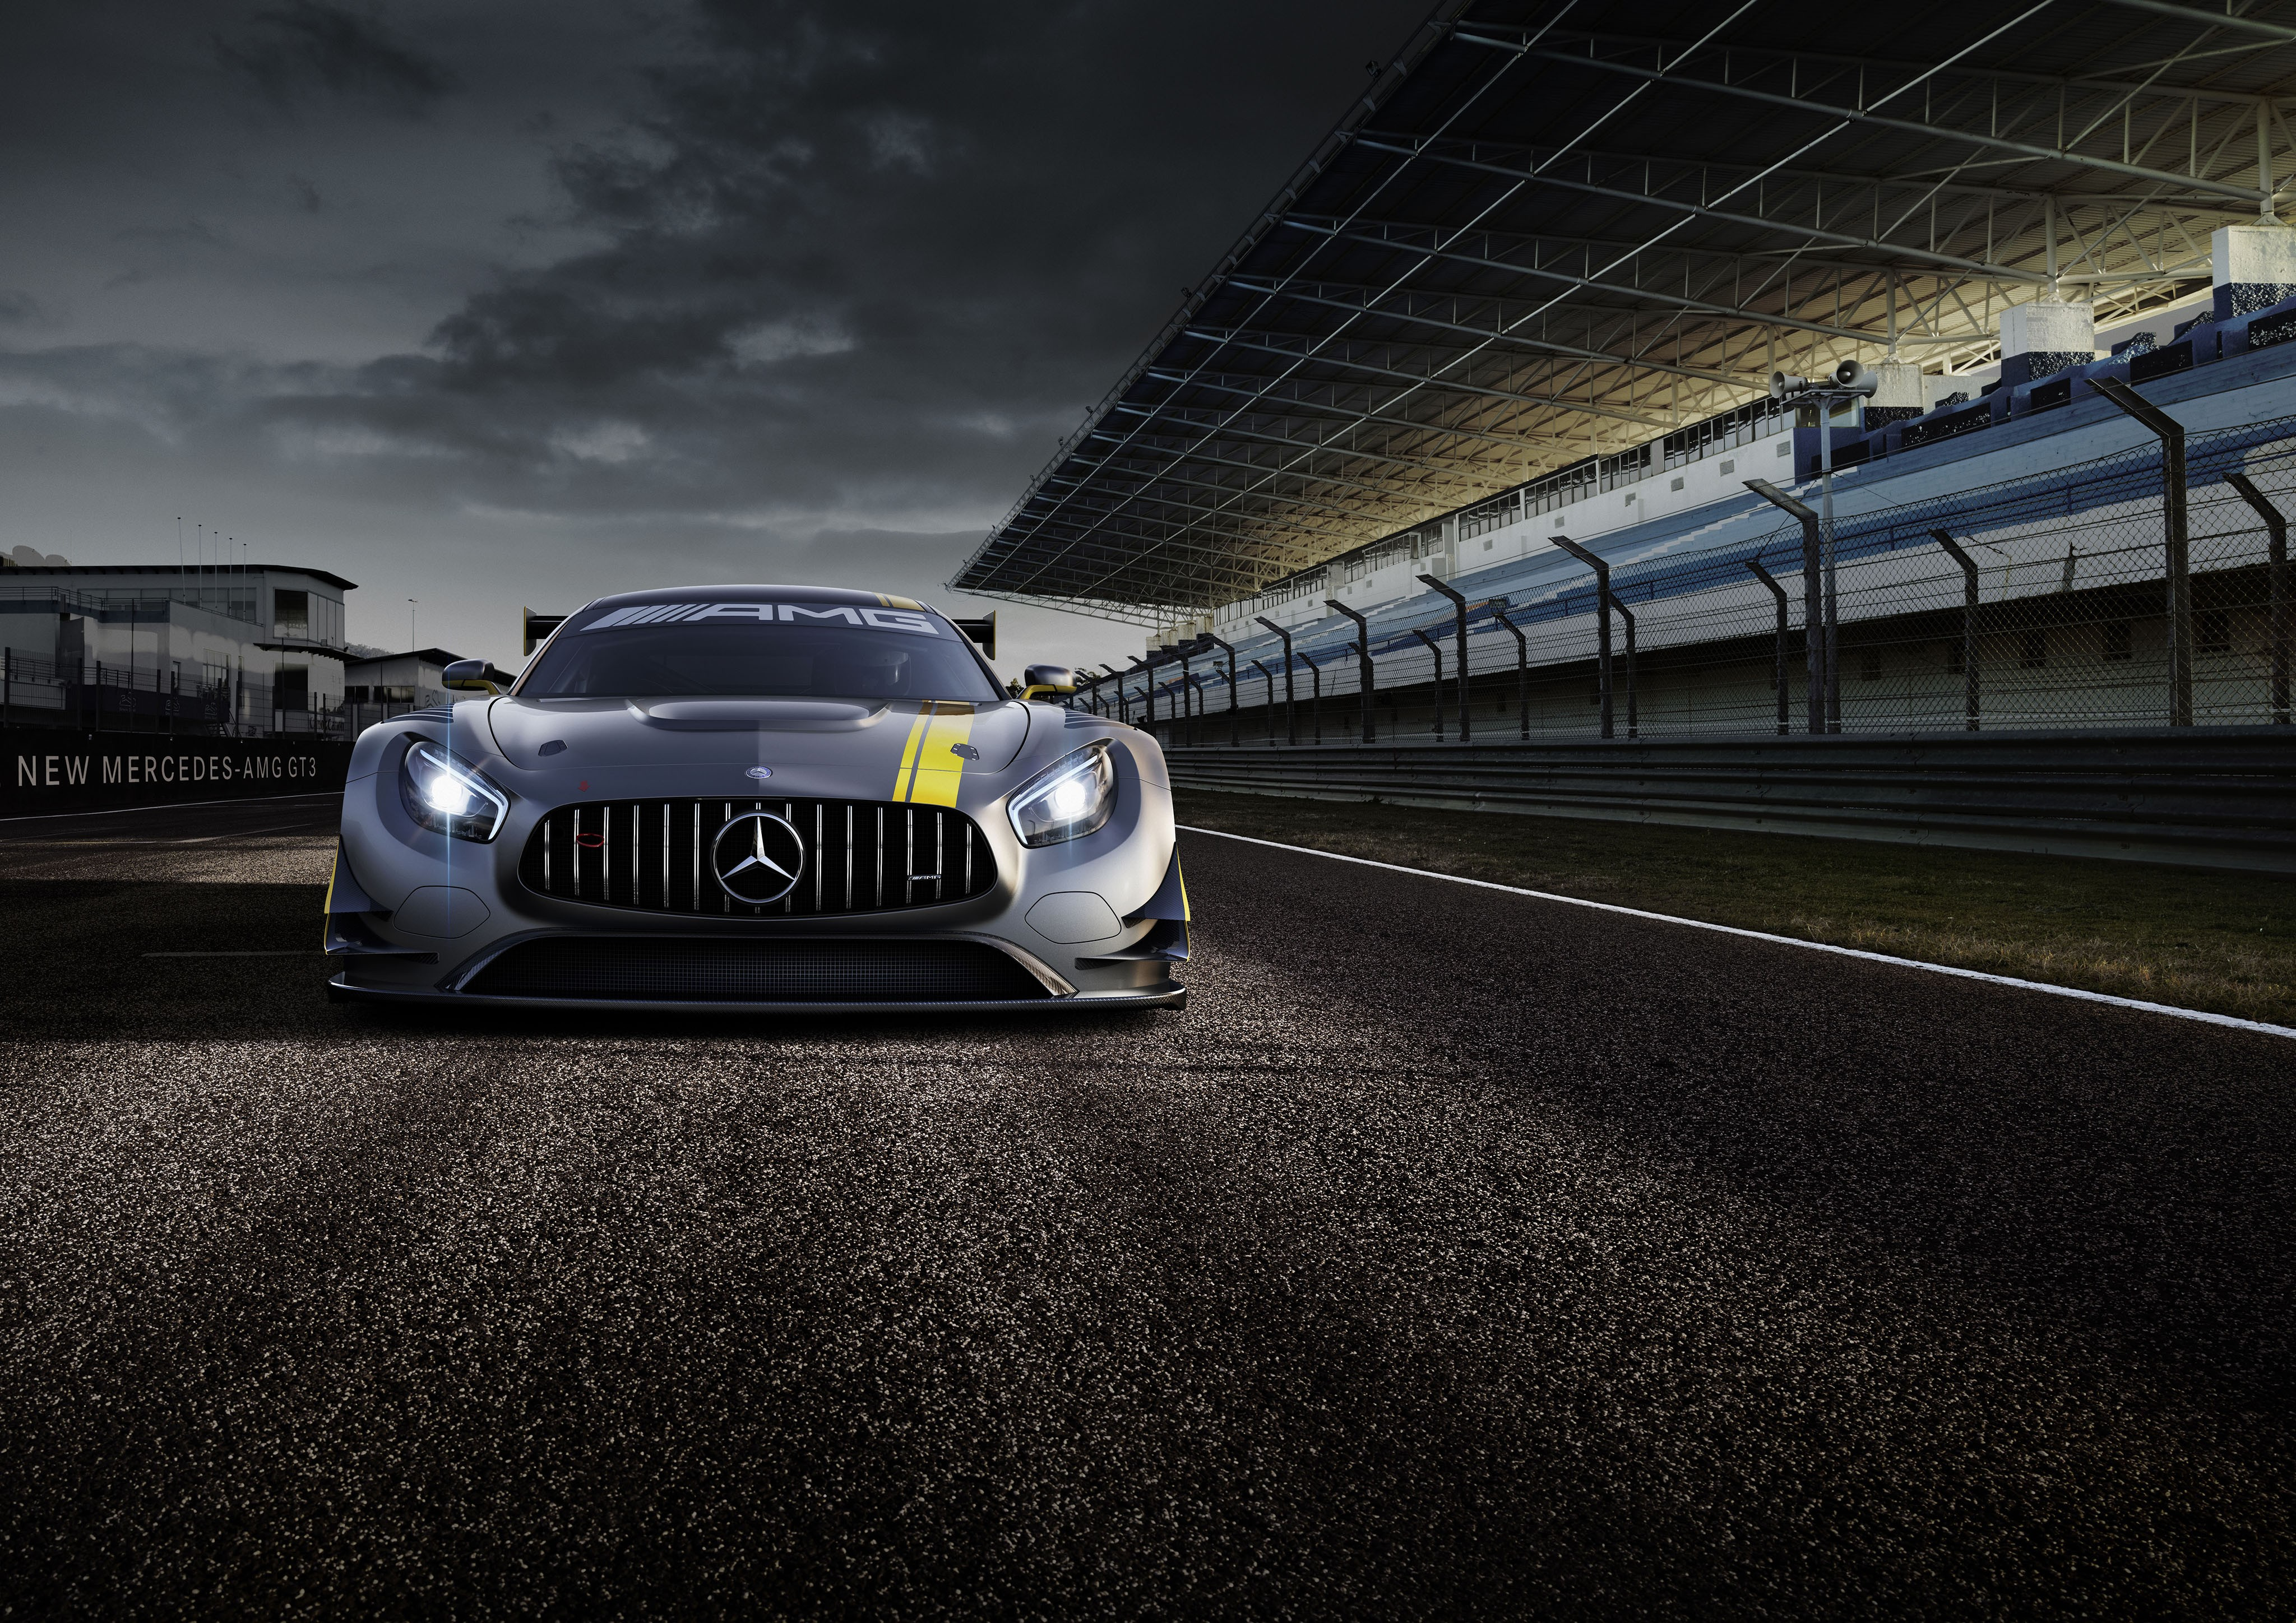 Windows Phone Car Wallpapers Wallpaper Mercedes Amg Gt3 Hypercar Coupe Gray Cars